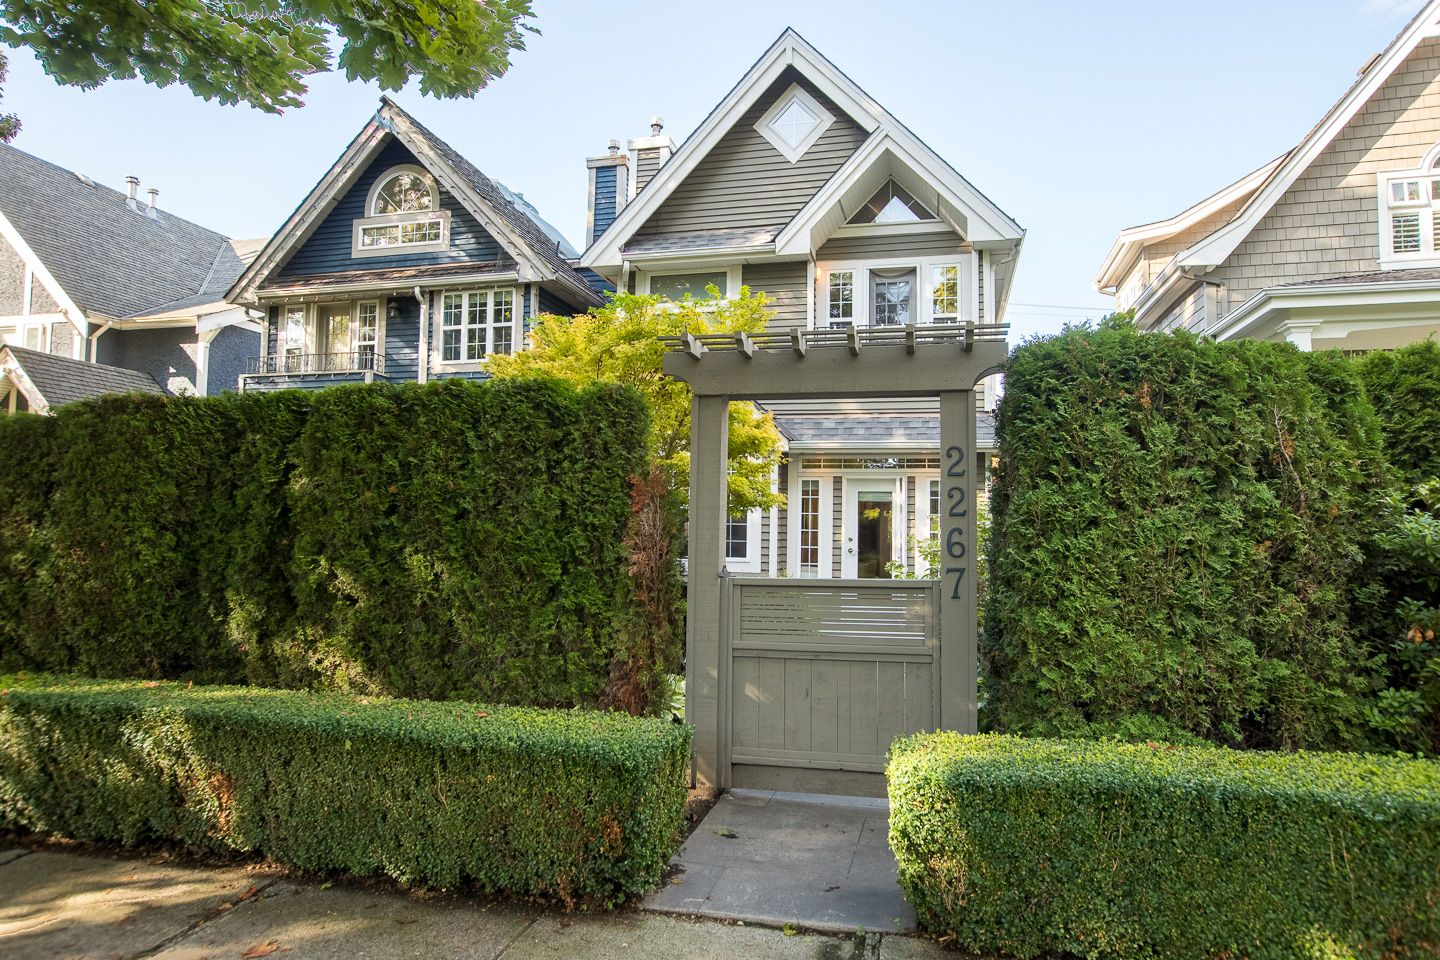 Photo 20: Photos: 2267 WEST 13TH AV in VANCOUVER: Kitsilano 1/2 Duplex for sale (Vancouver West)  : MLS®# R2407976